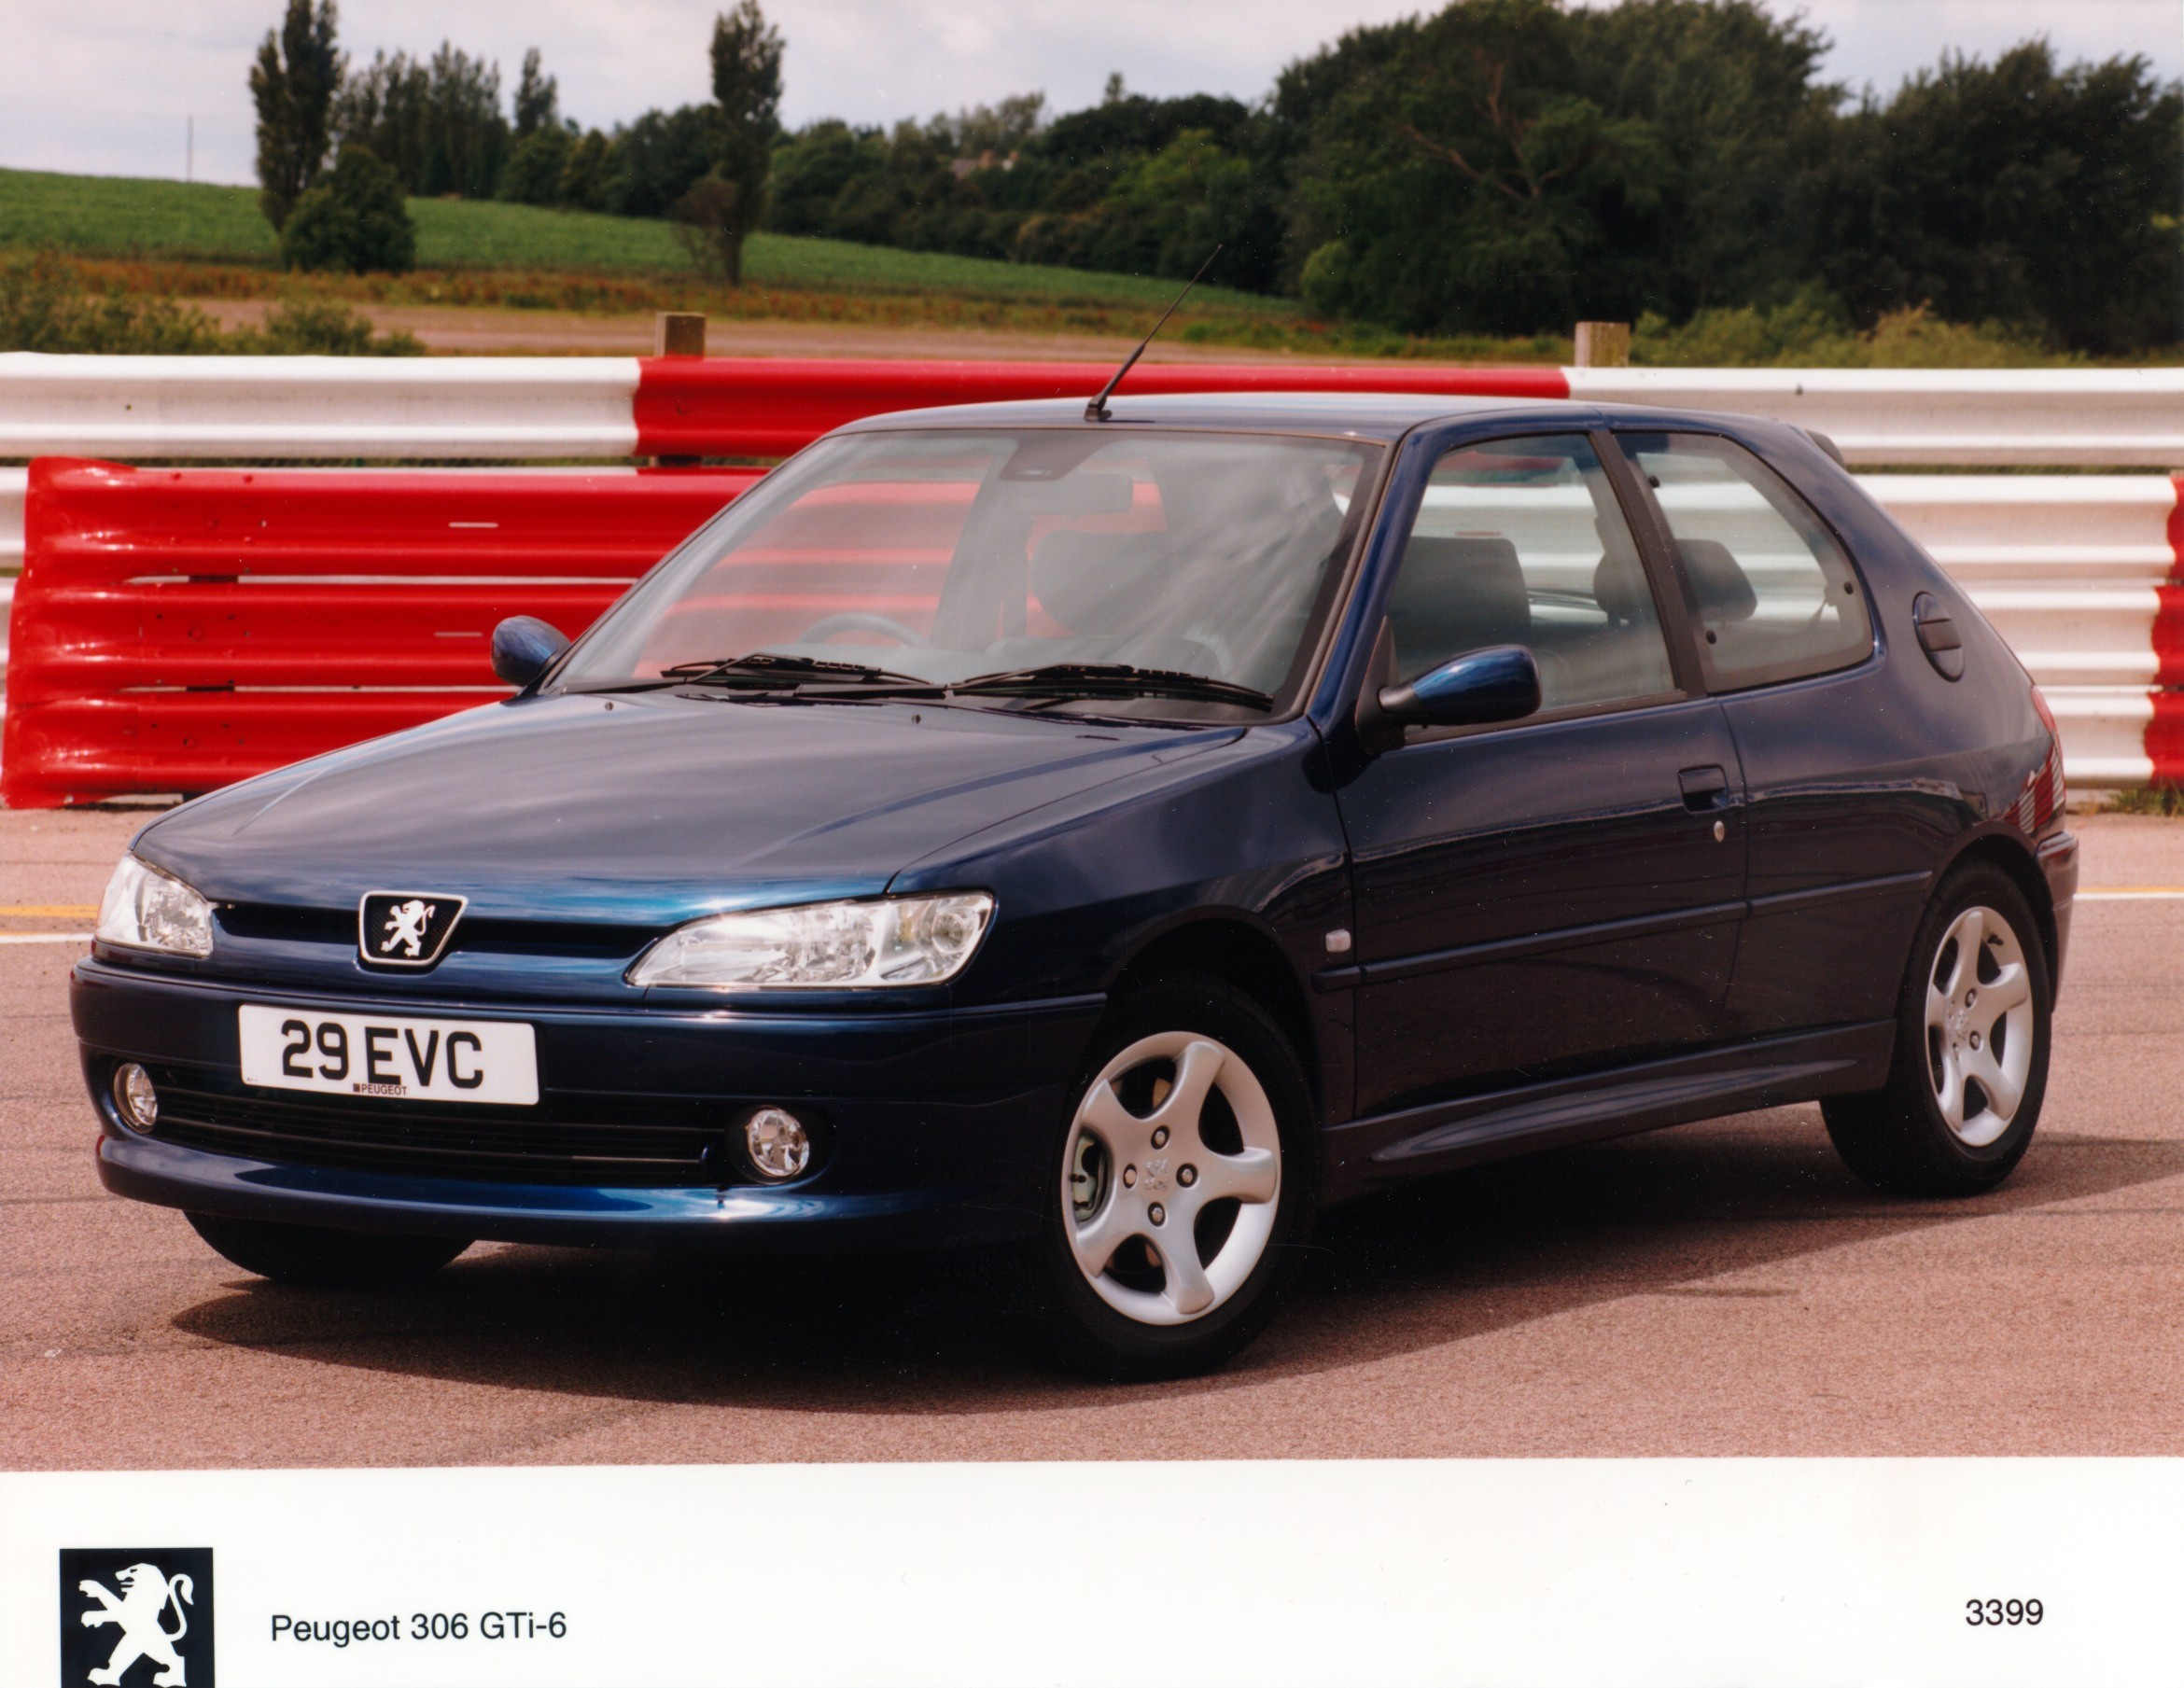 peugeot 306 gti 6 specs 1996 1997 1998 1999 2000 autoevolution. Black Bedroom Furniture Sets. Home Design Ideas